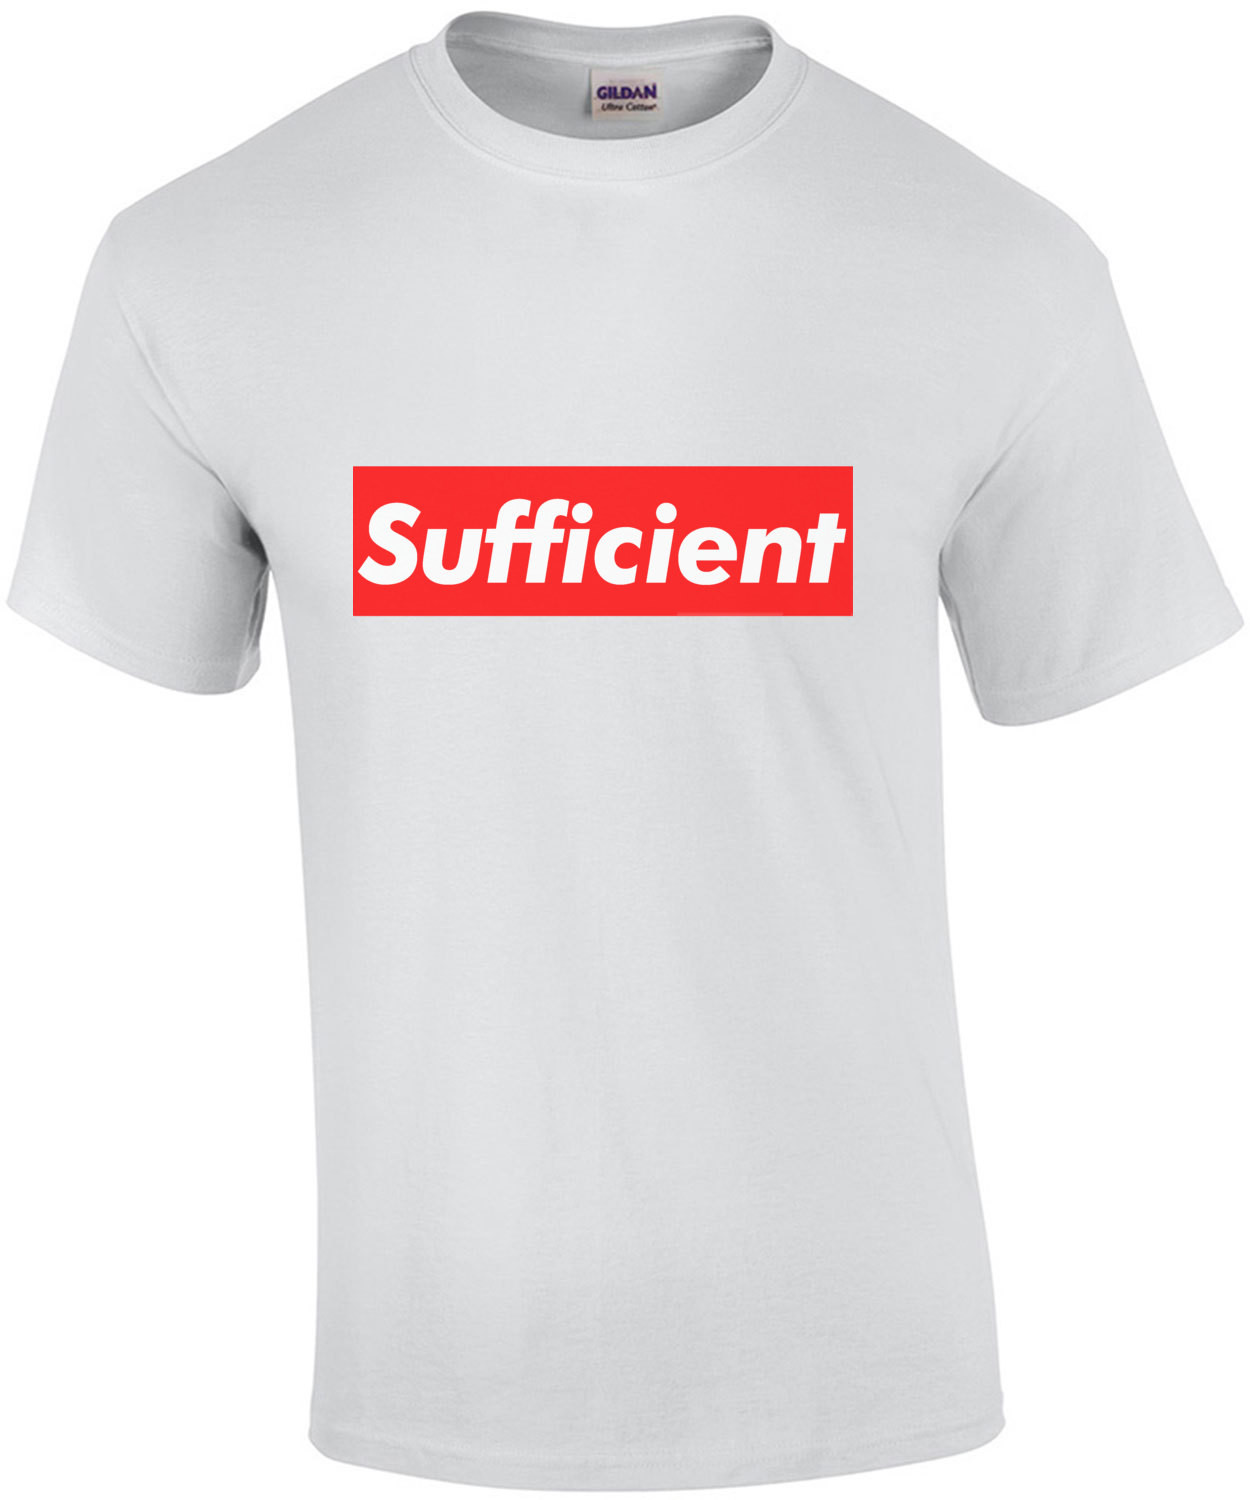 Sufficient T-Shirt - Supreme Parody T-Shirt